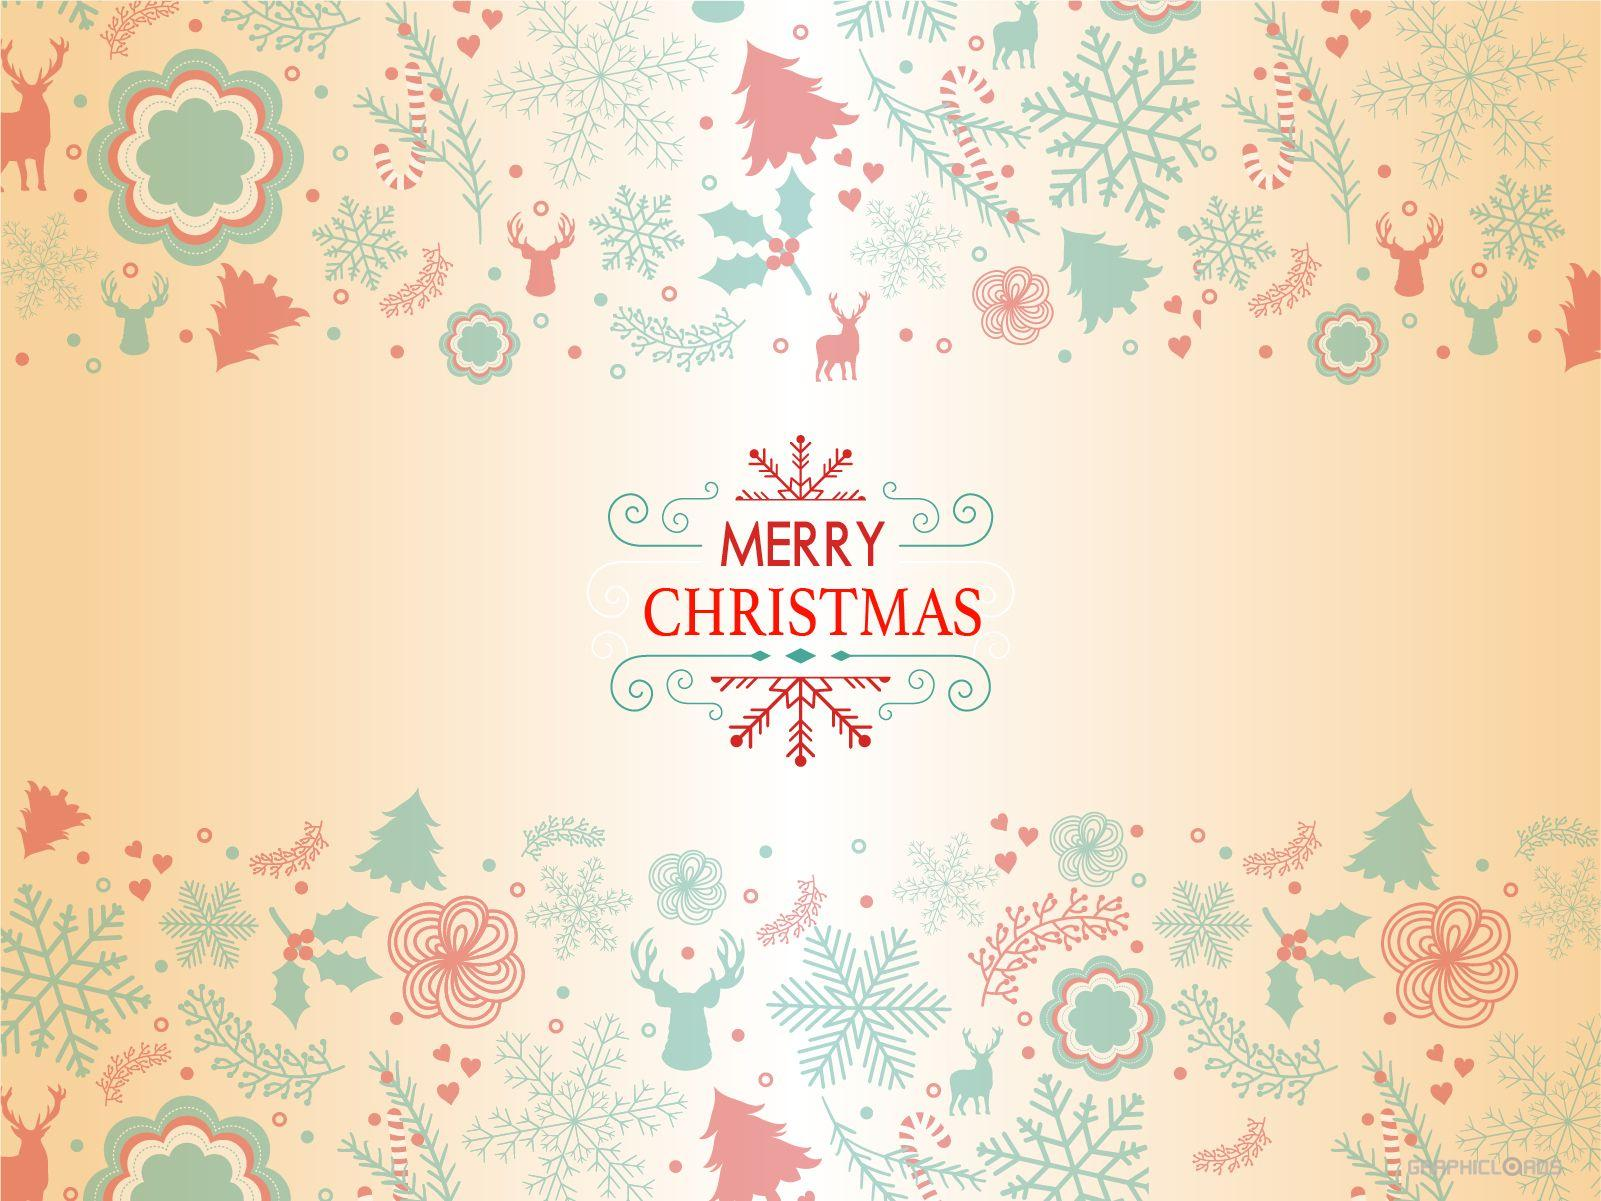 15 High-Quality Christmas Wallpapers 2015 - GraphicLoads